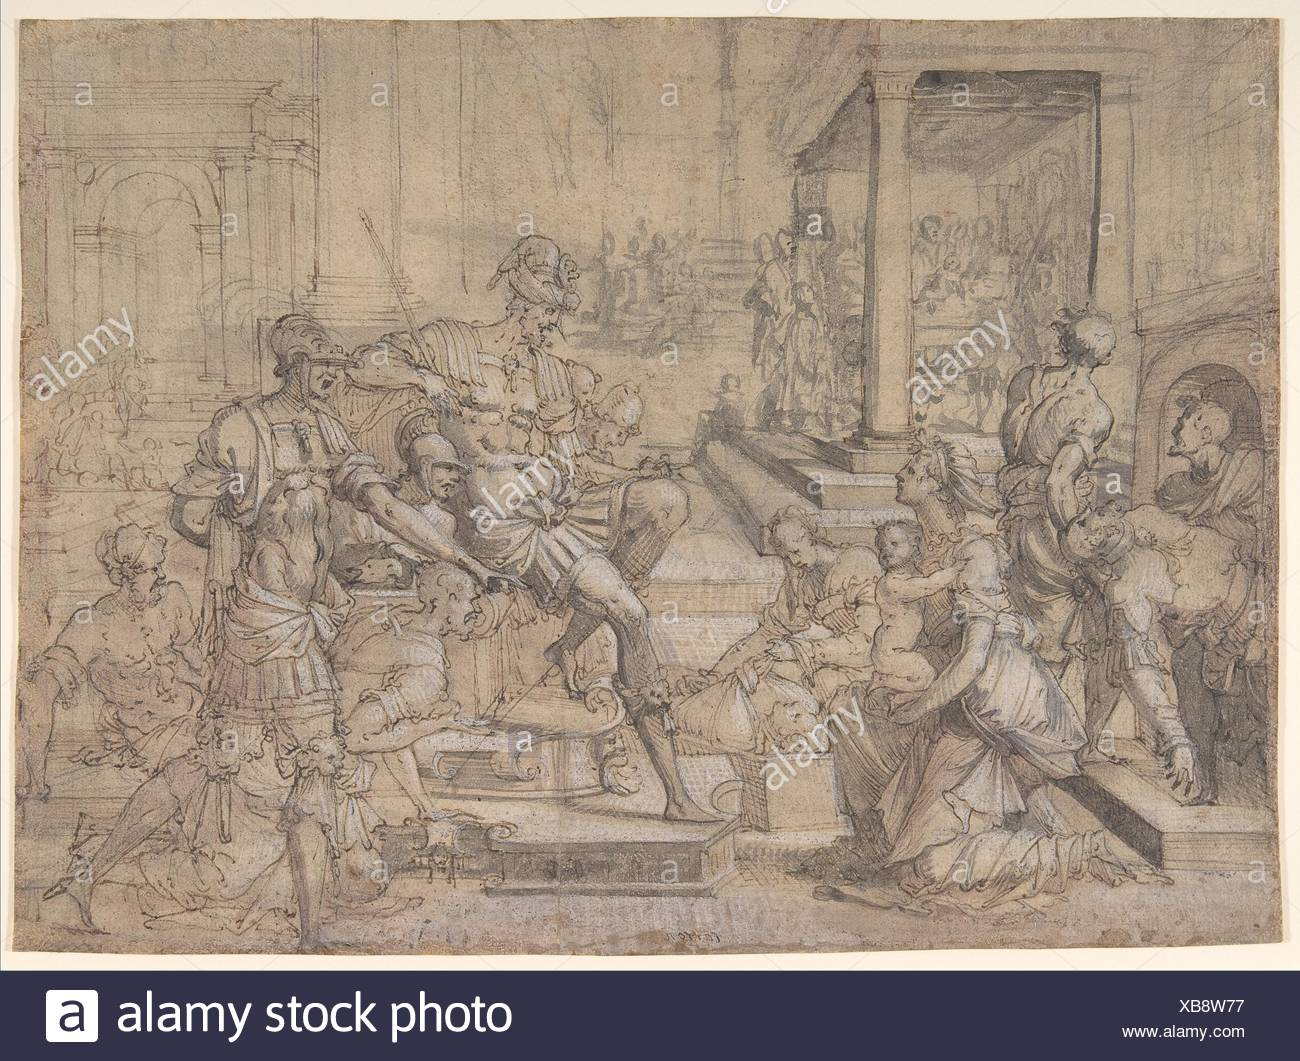 Amya Petitioning Faustus for the Custody of Saint Mamas. Artist: Jean Cousin the Elder (French, Souci (?) ca. 1490-ca. 1560 Paris (?)); Date: - Stock Image